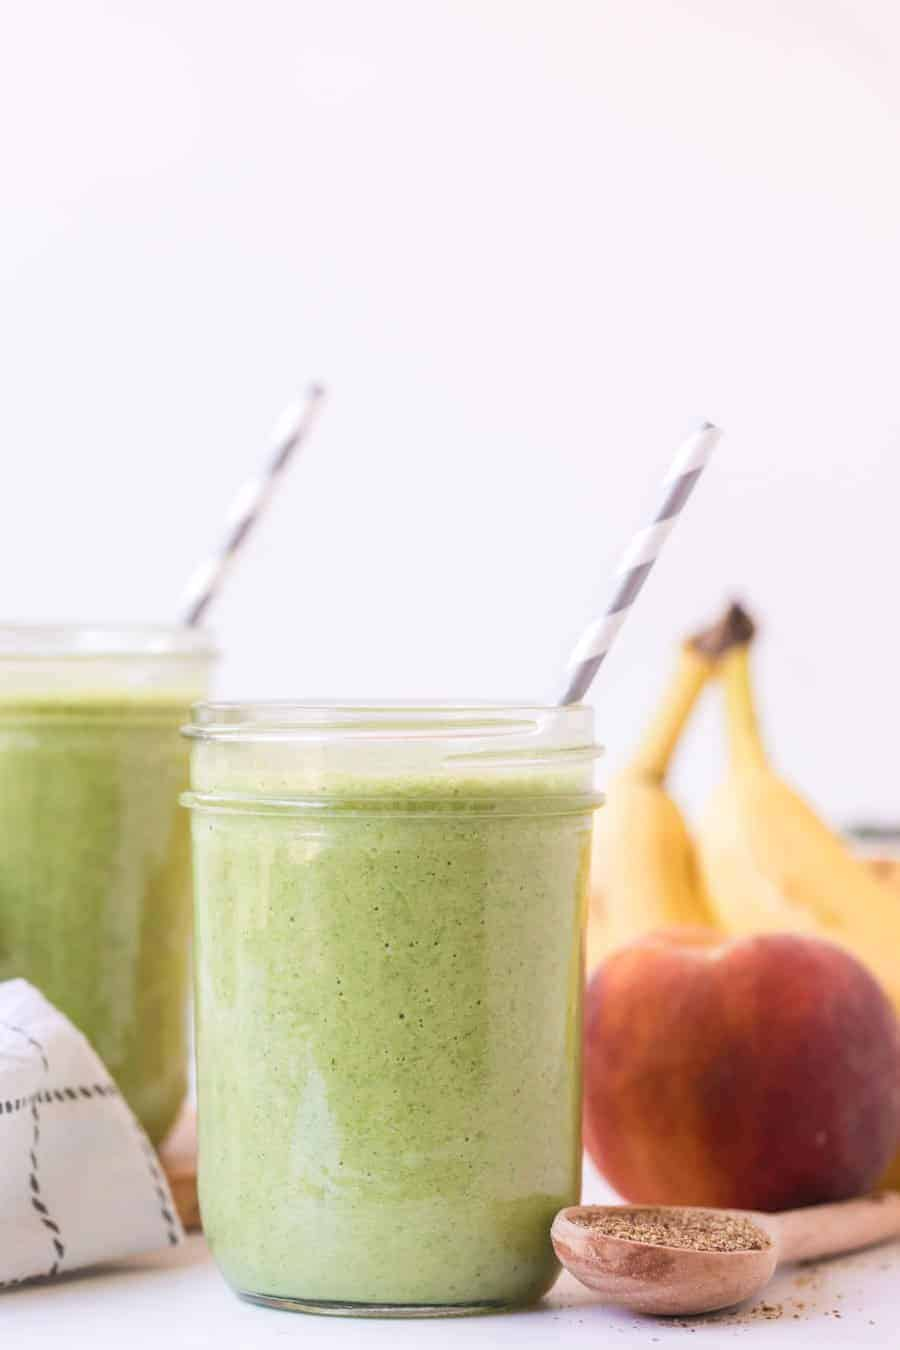 two healthy green smoothies in glass jars with paper straws next to an apple and bananas